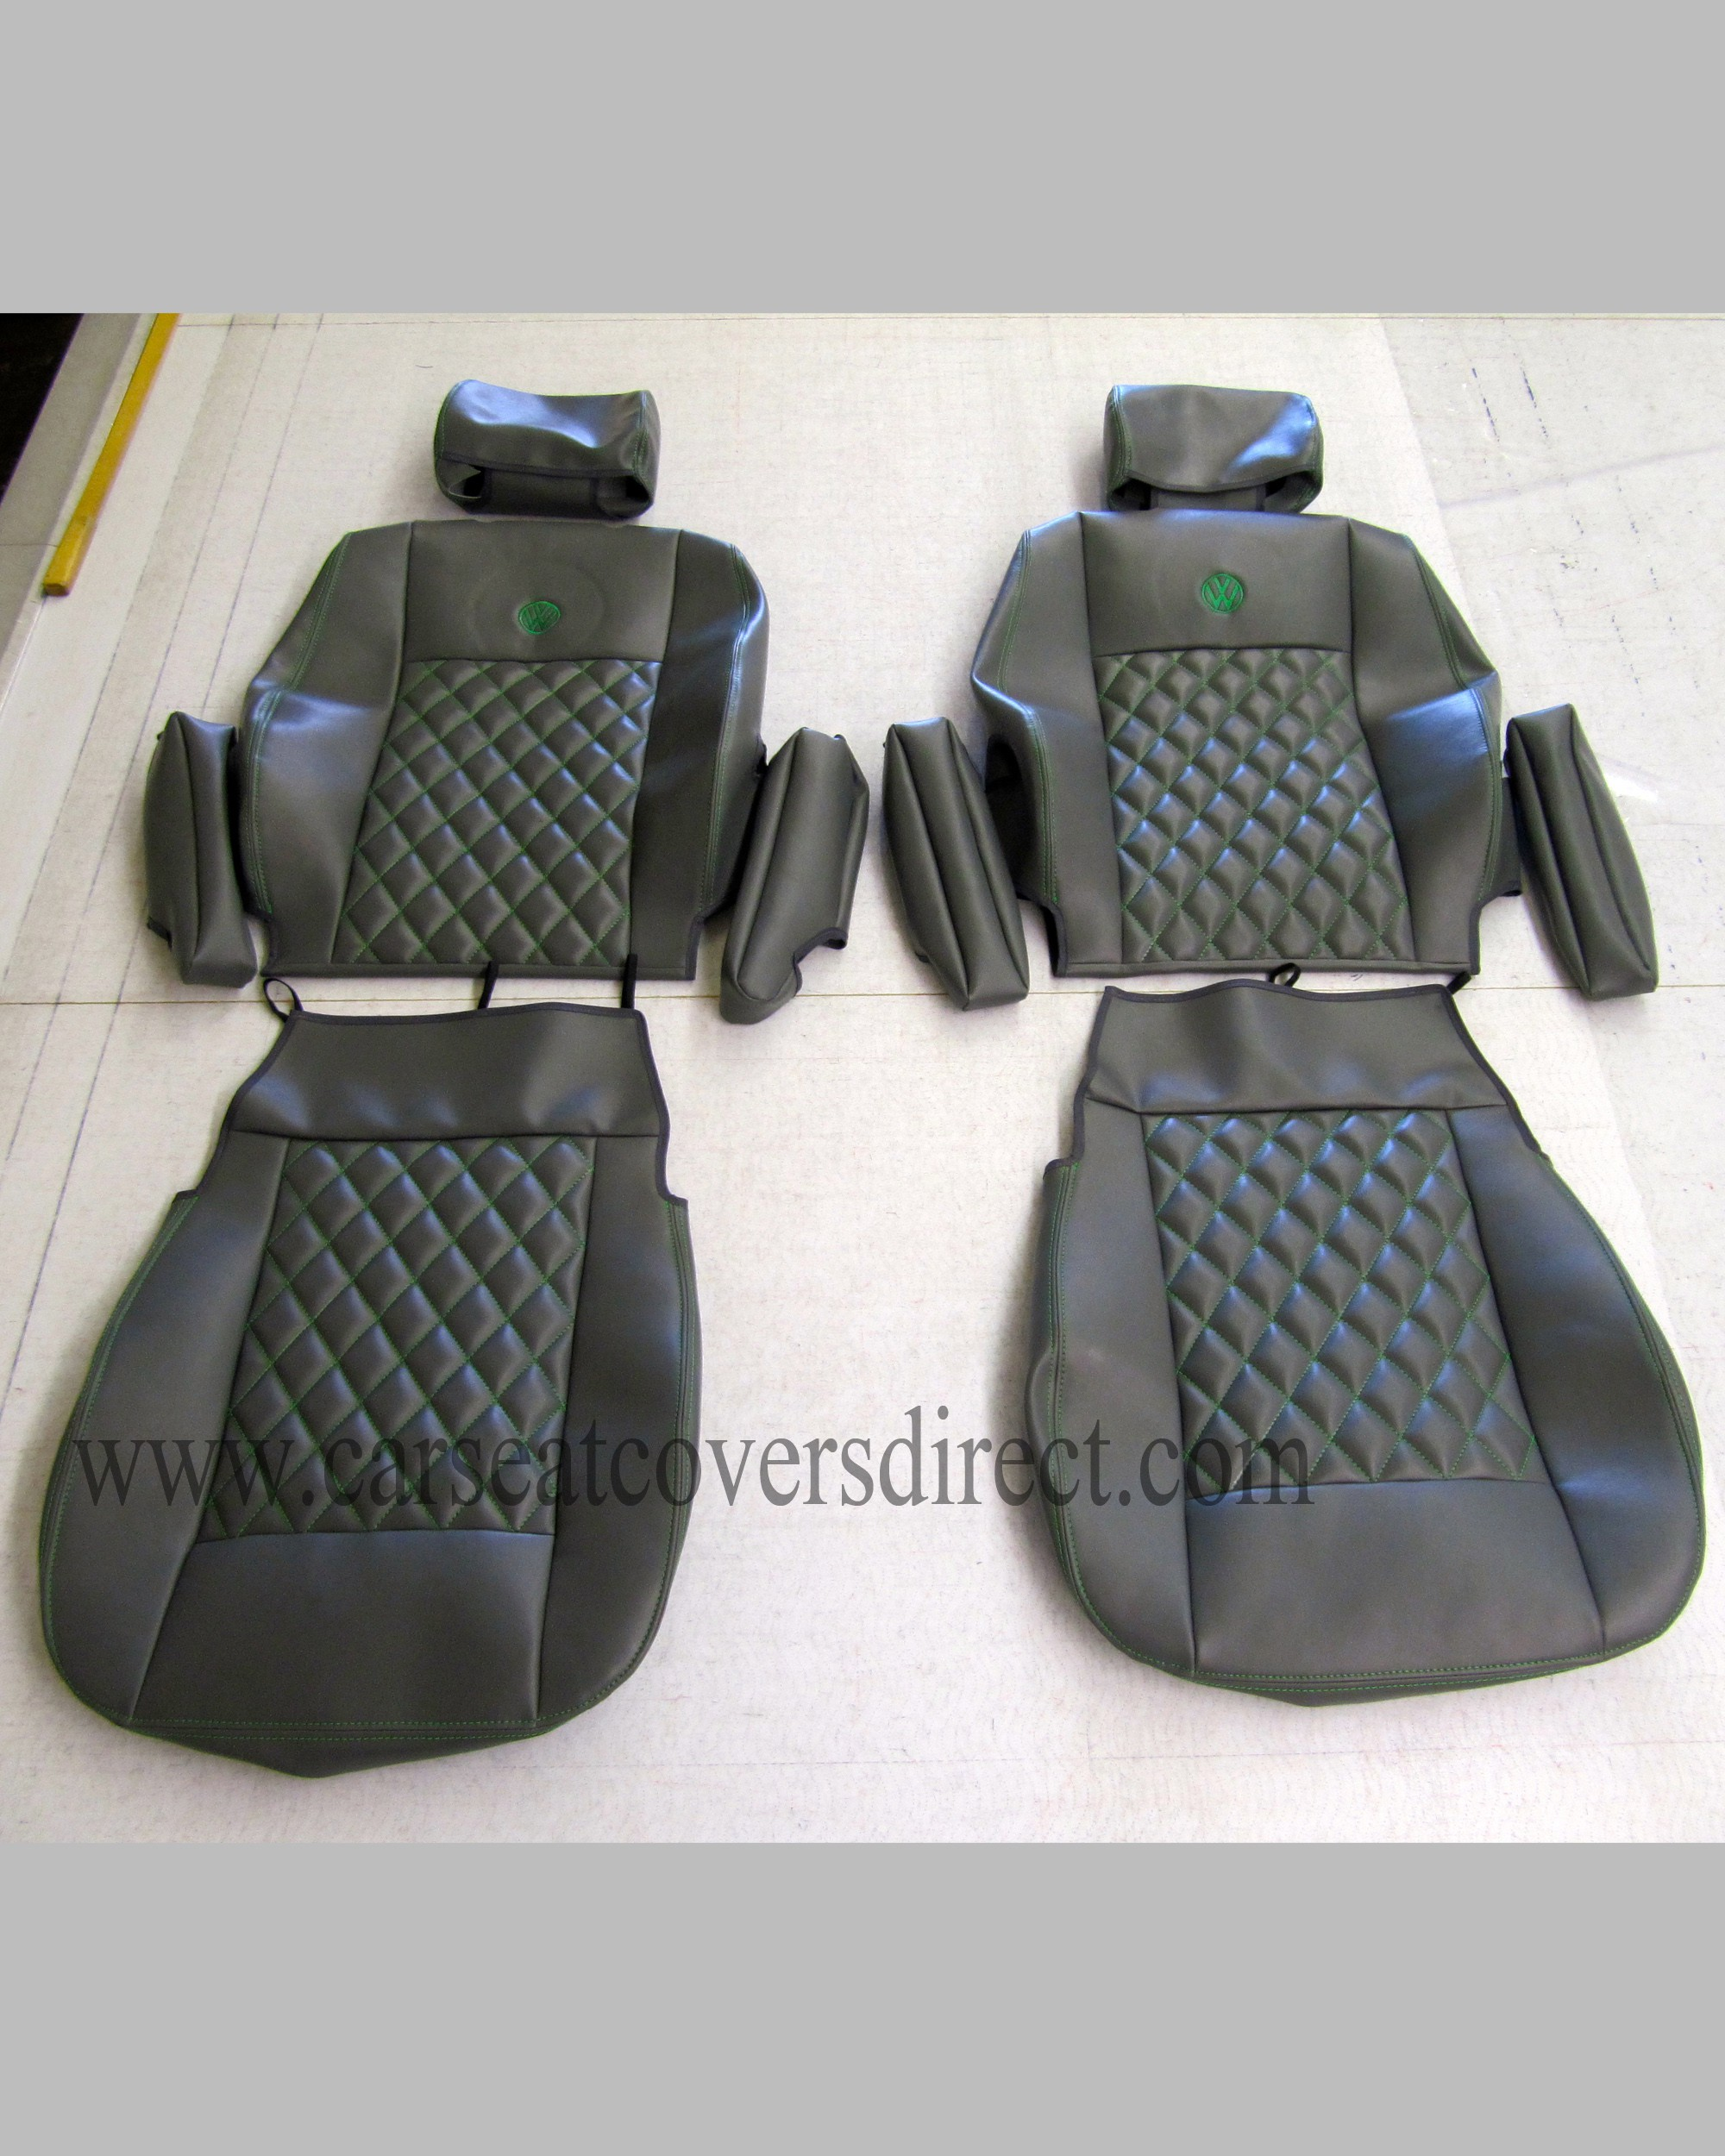 Vw T4 Seat Covers Black Diamond Quilted Seat Car Seat